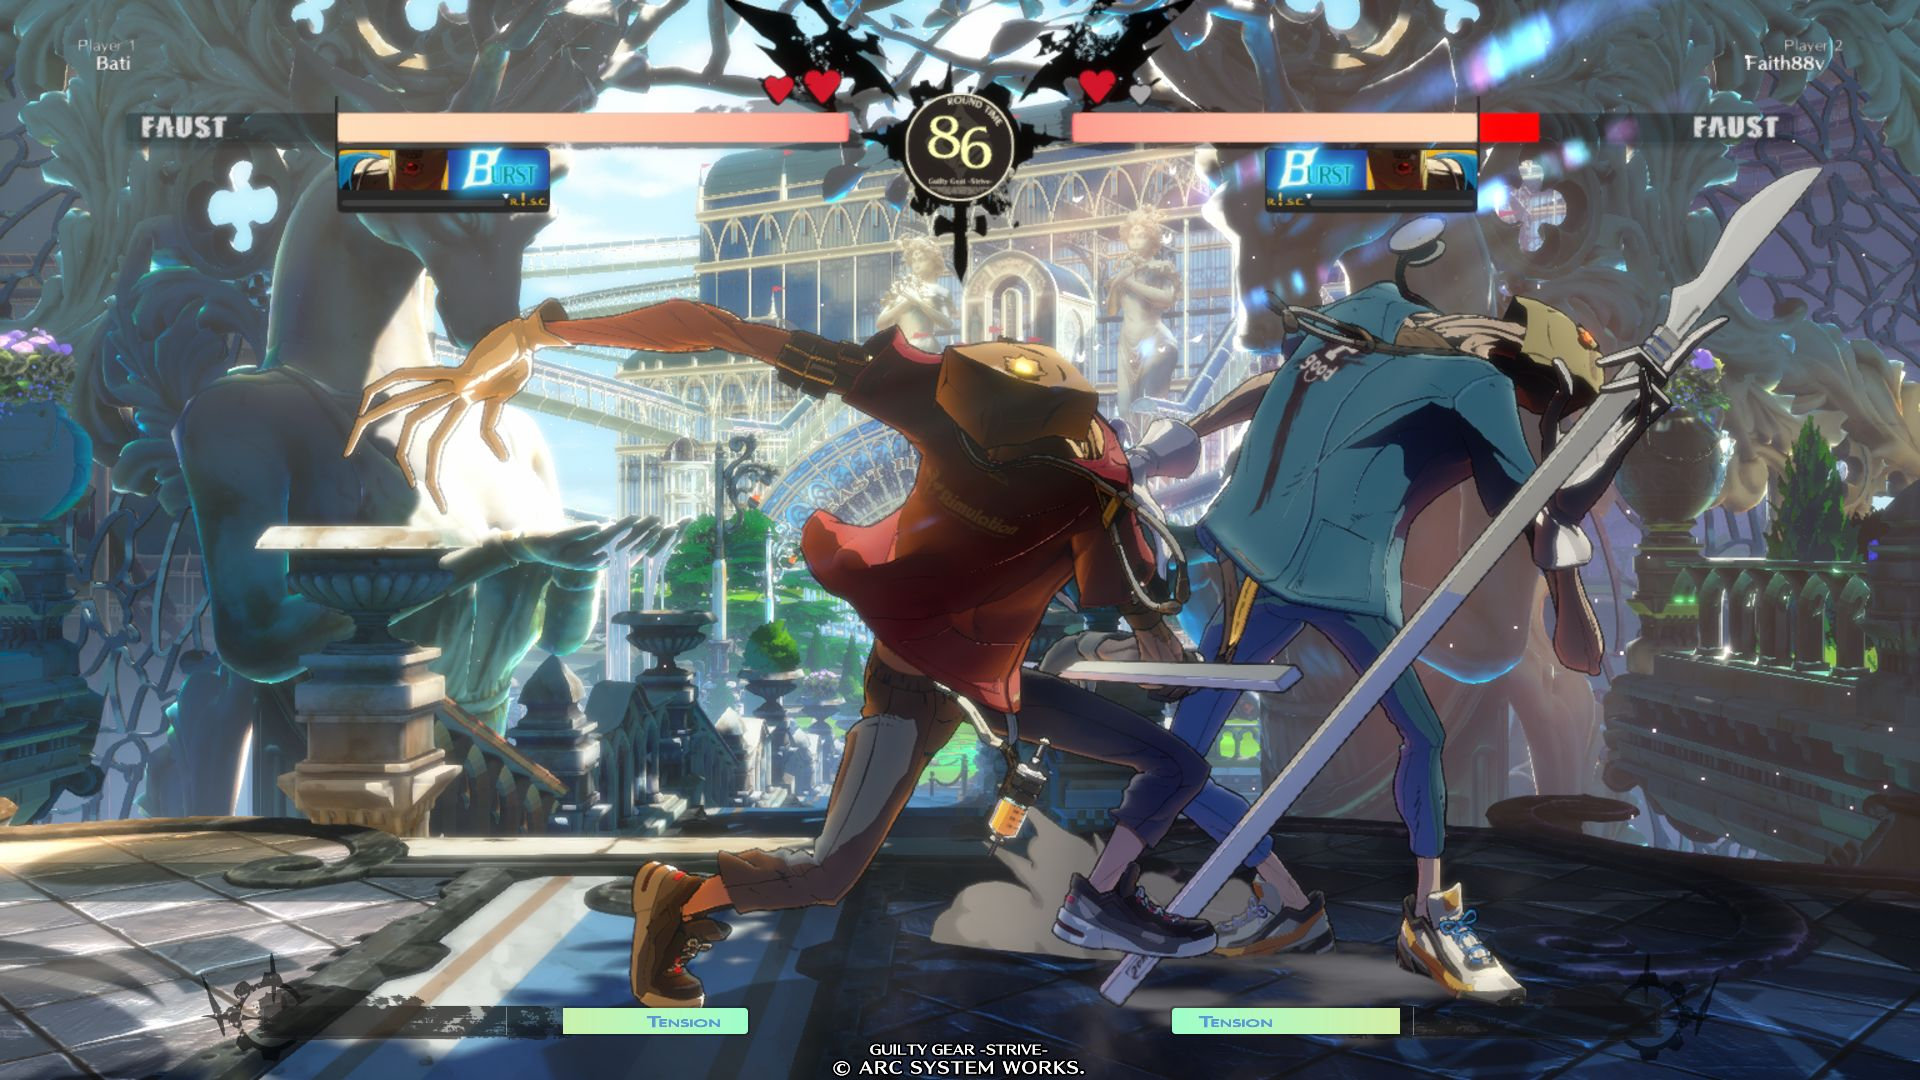 Faust VS Faust in GUILTY GEAR -STRIVE-